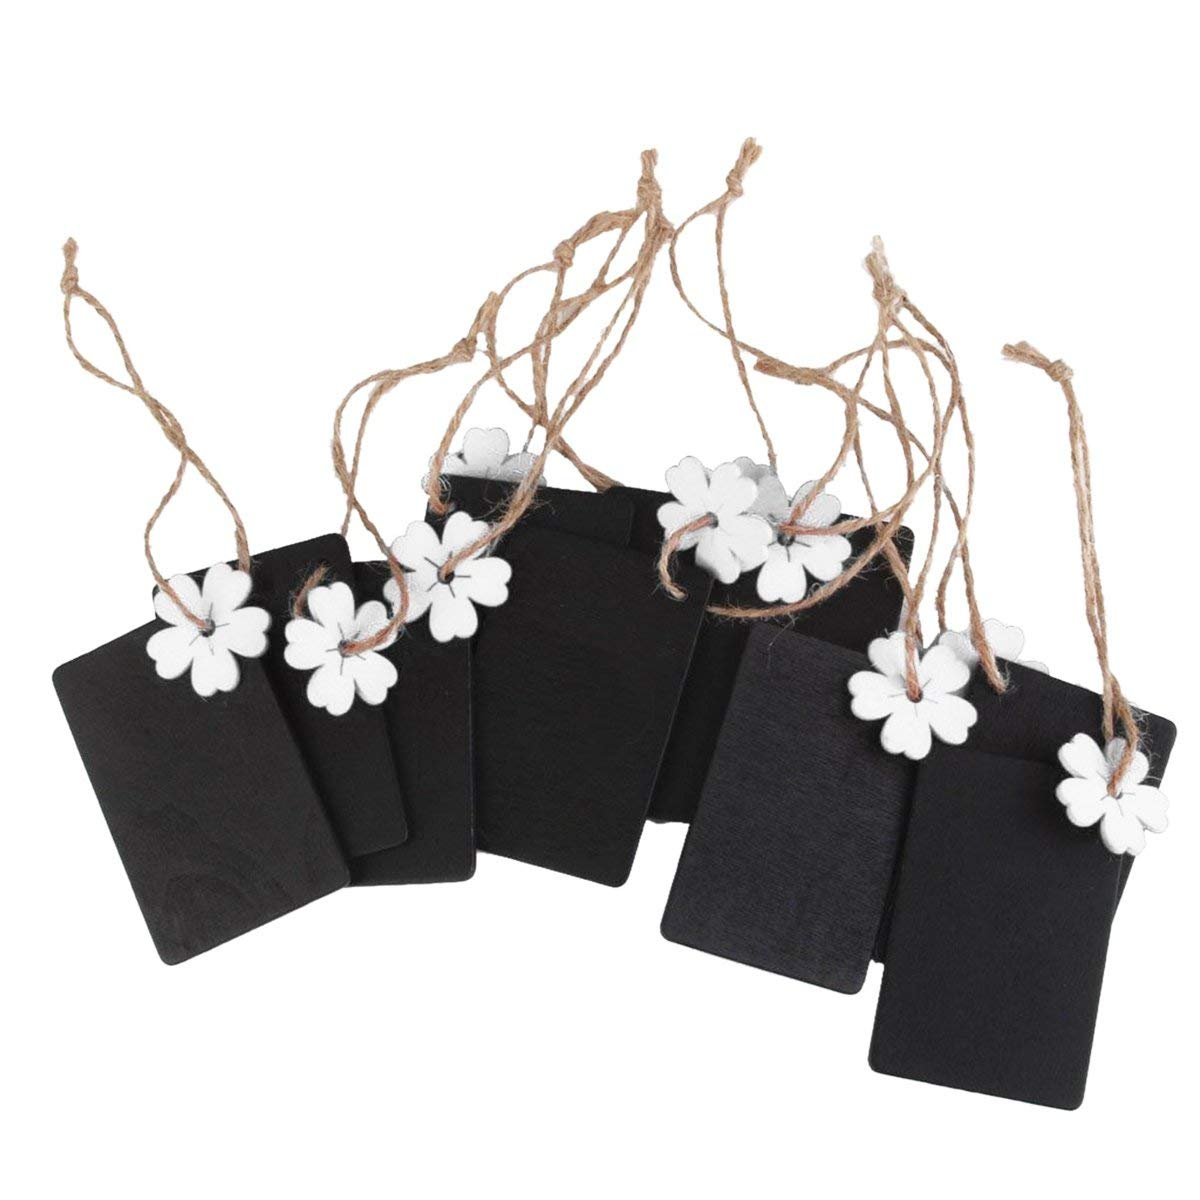 ULTNICE 10pcs Mini Chalkboard Hanging Blackboard Wood Gift Tags Favor Tags with Twine and White Flower